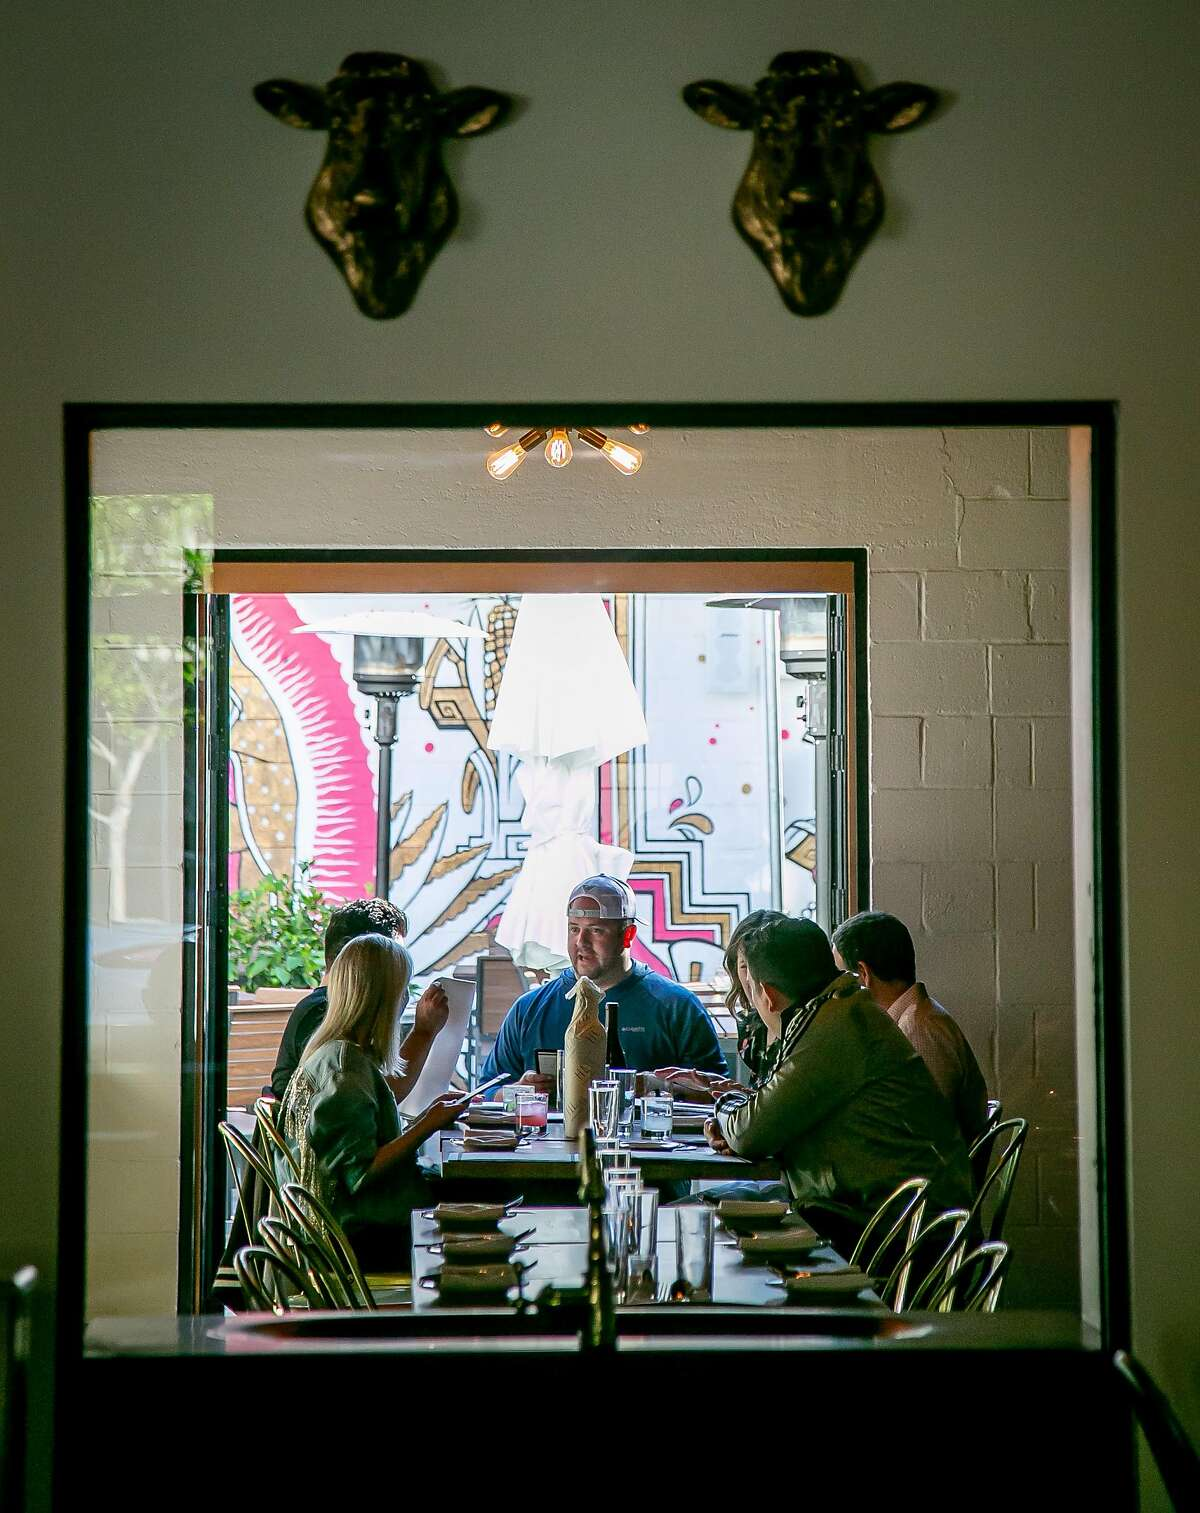 People have dinner at Gran Electrica in Napa, Calif., on May 26th, 2018.